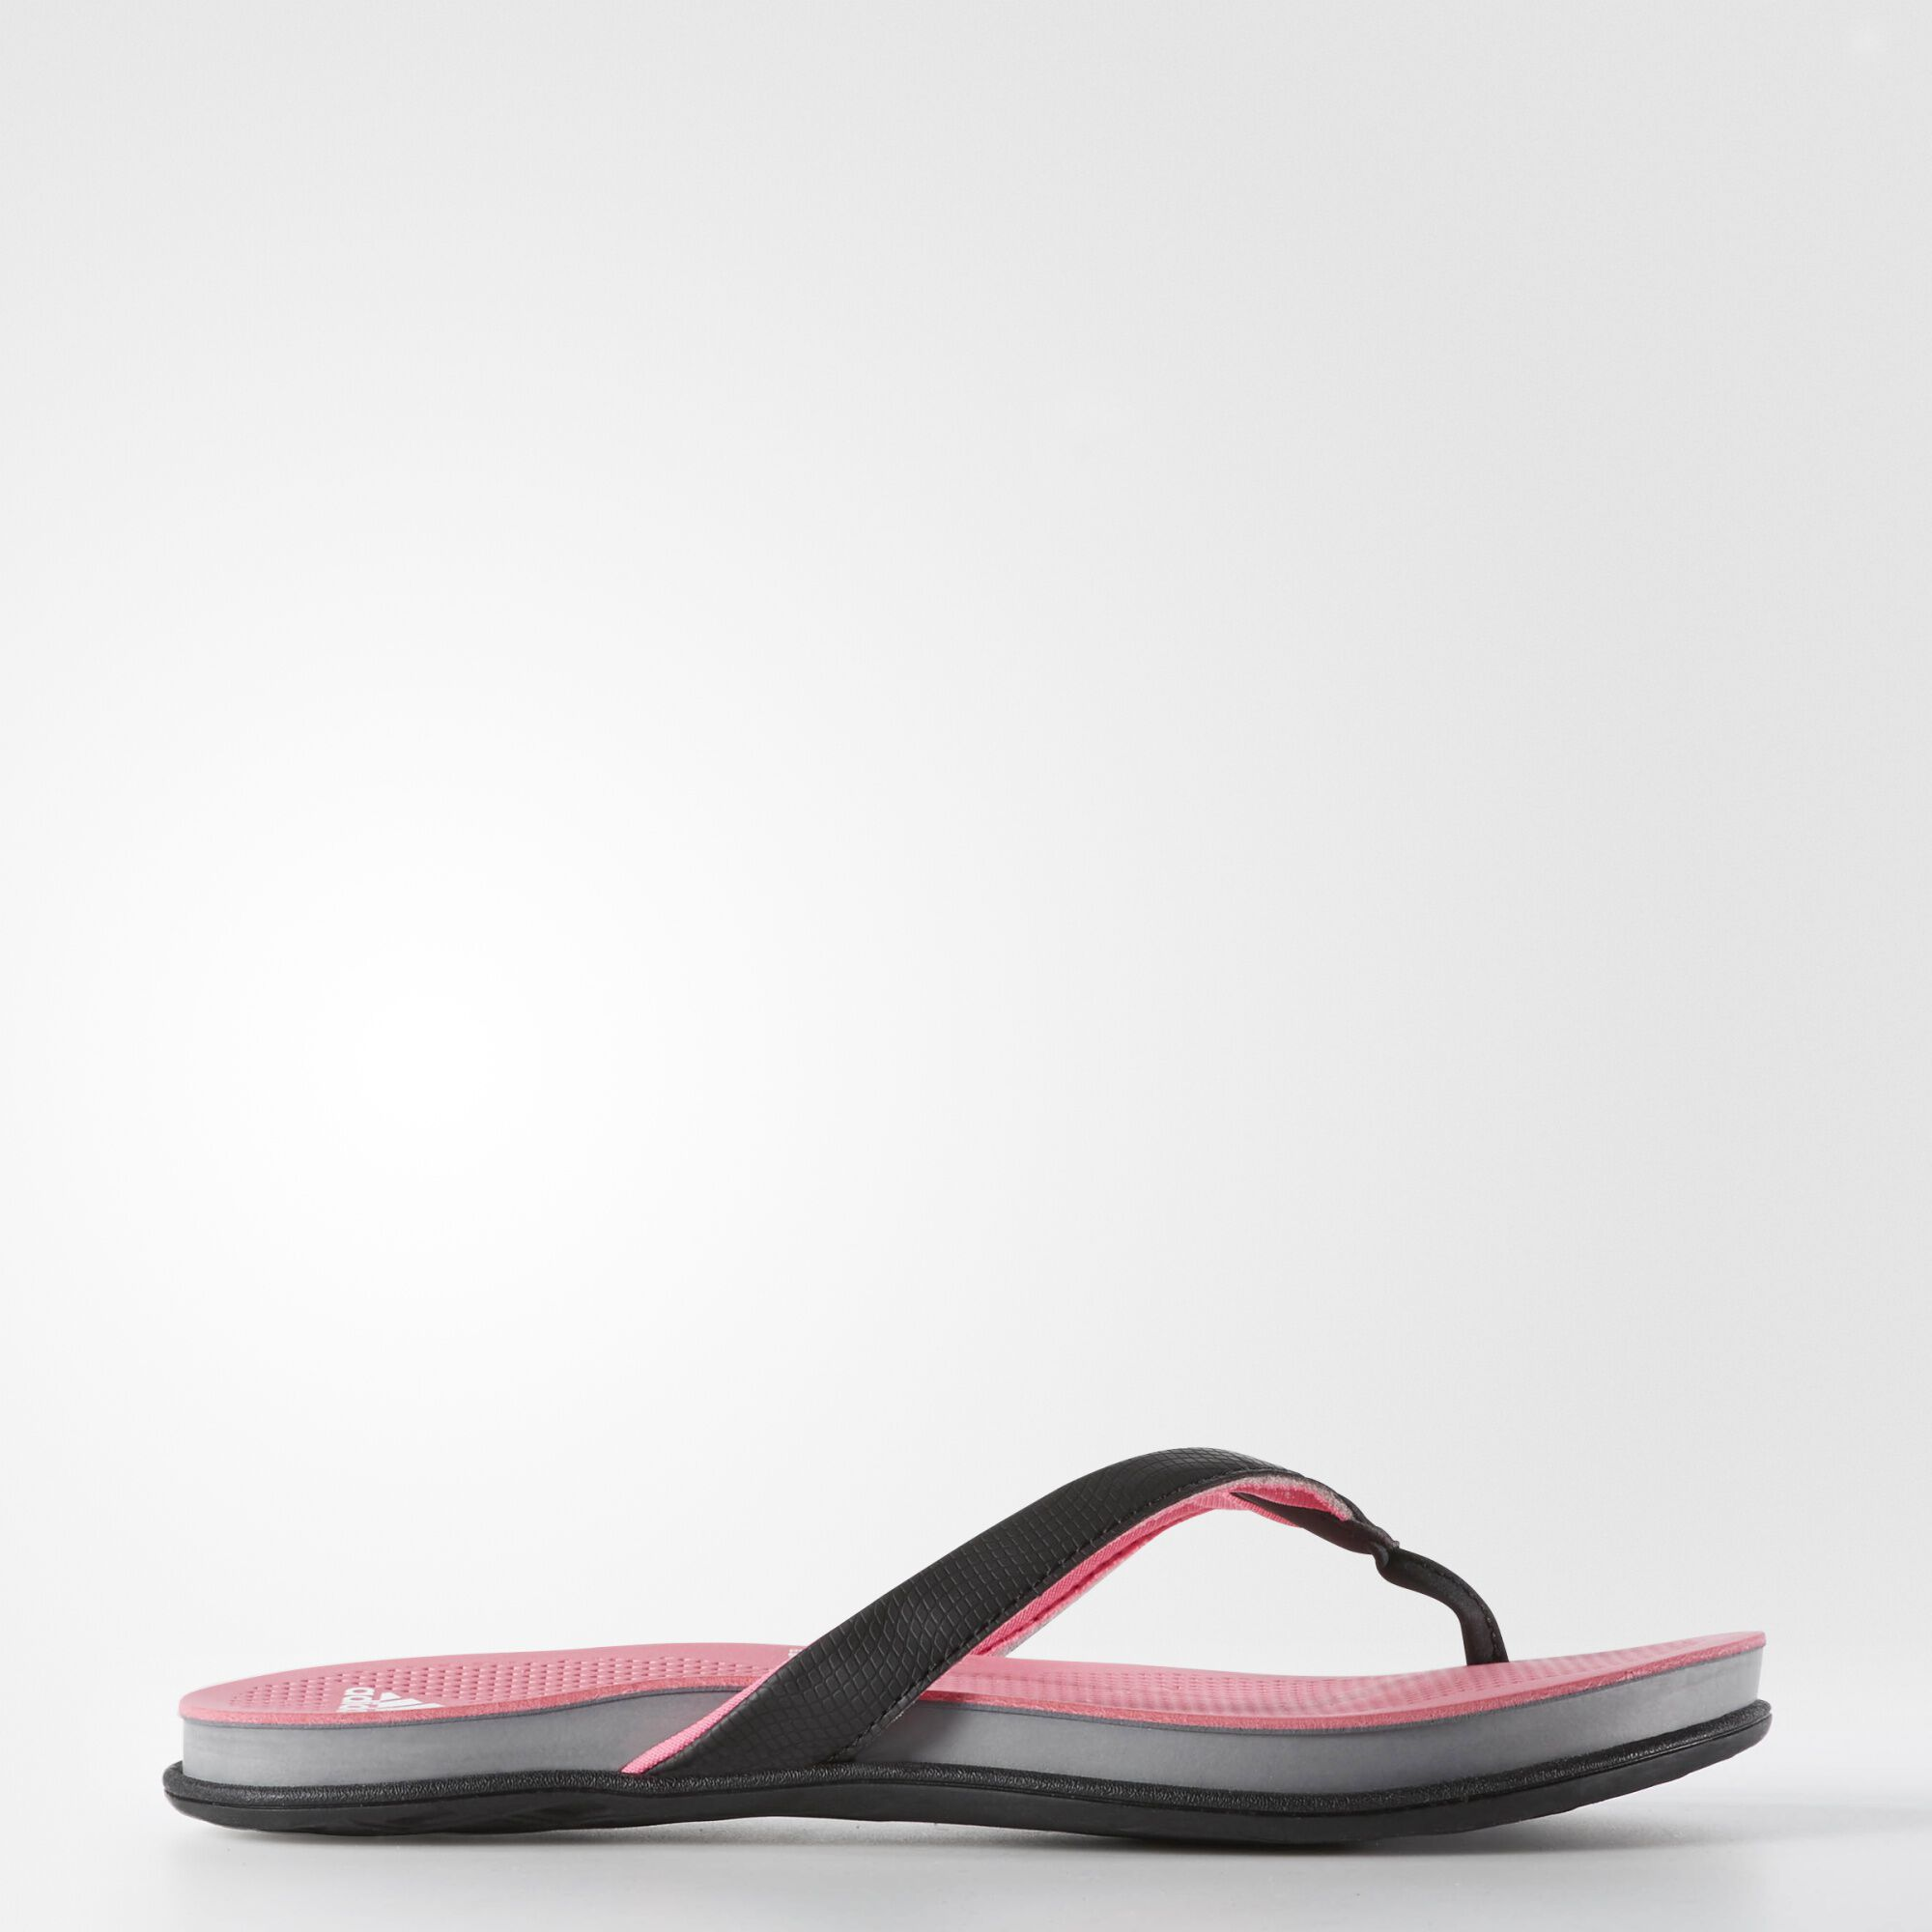 671a6fb6f050 adidas pink flip flops on sale   OFF72% Discounts